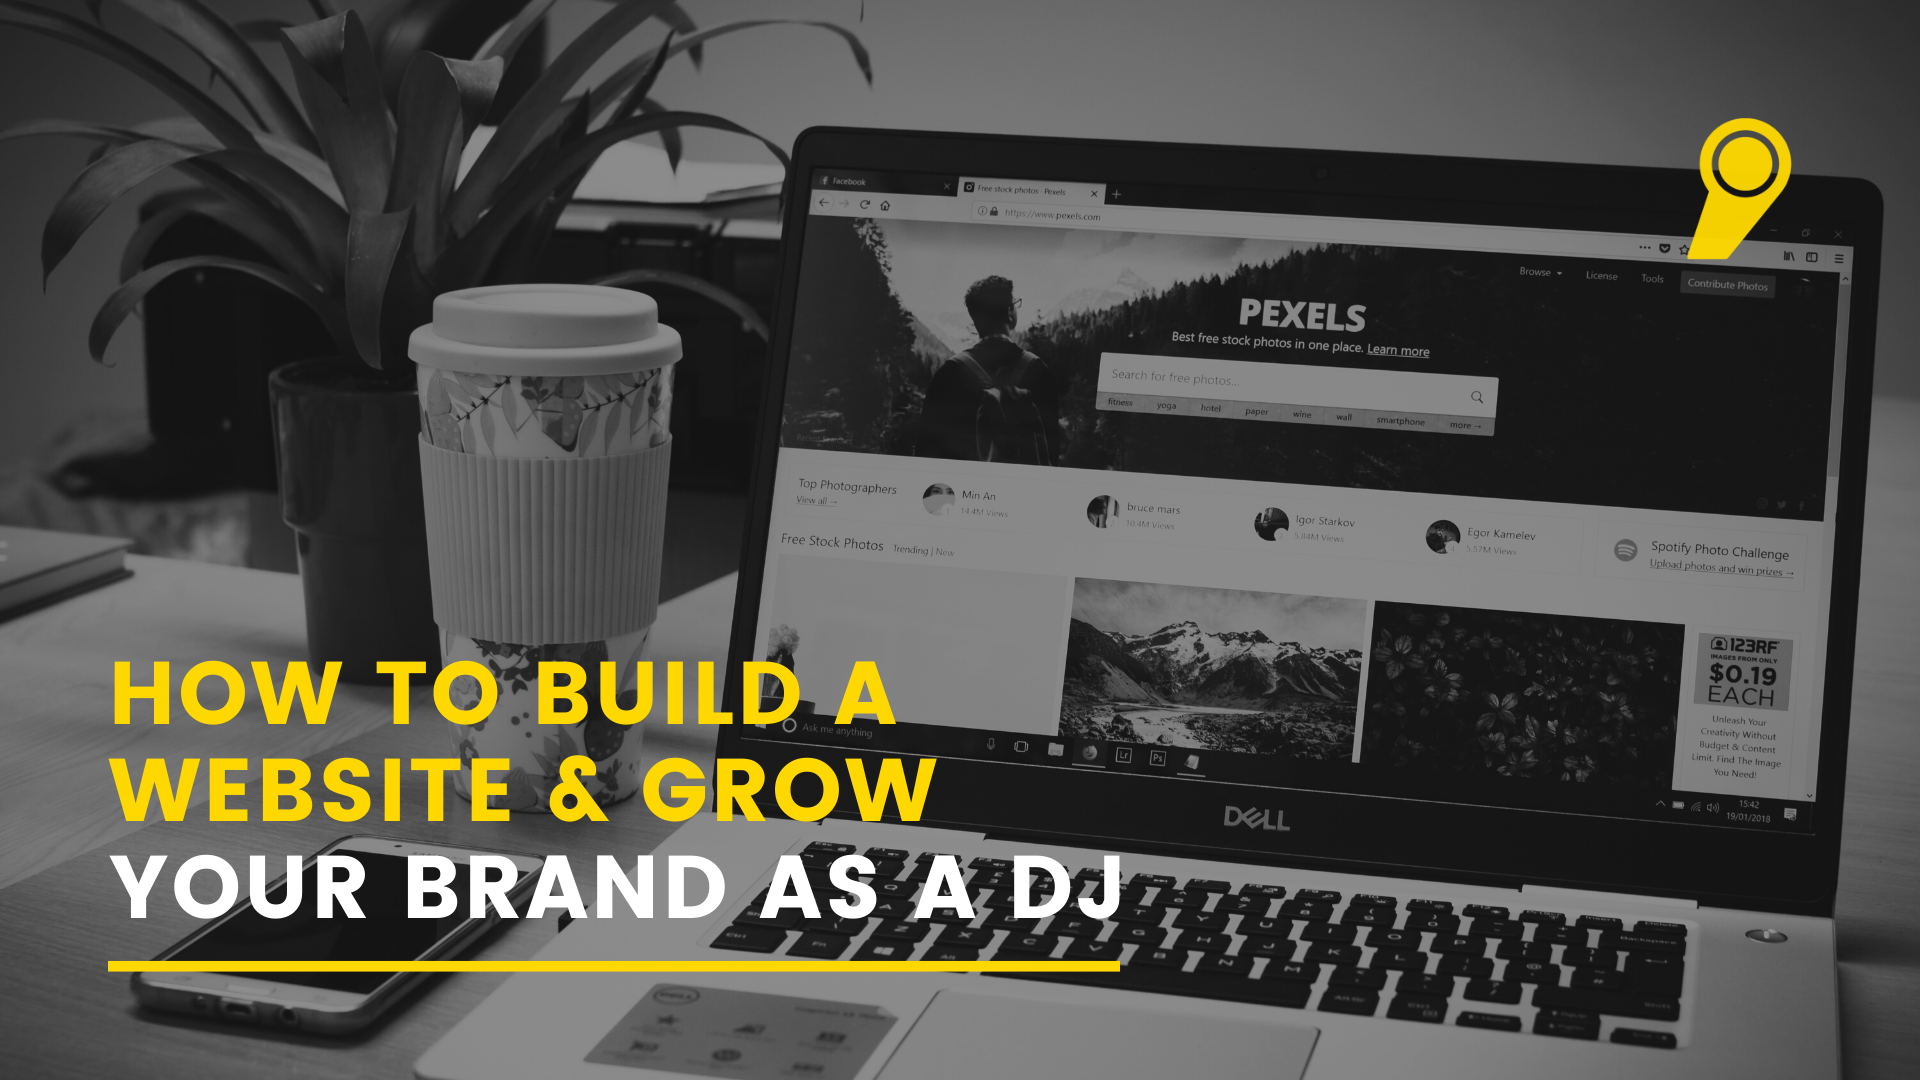 How to build a website and grow your brand as a dj